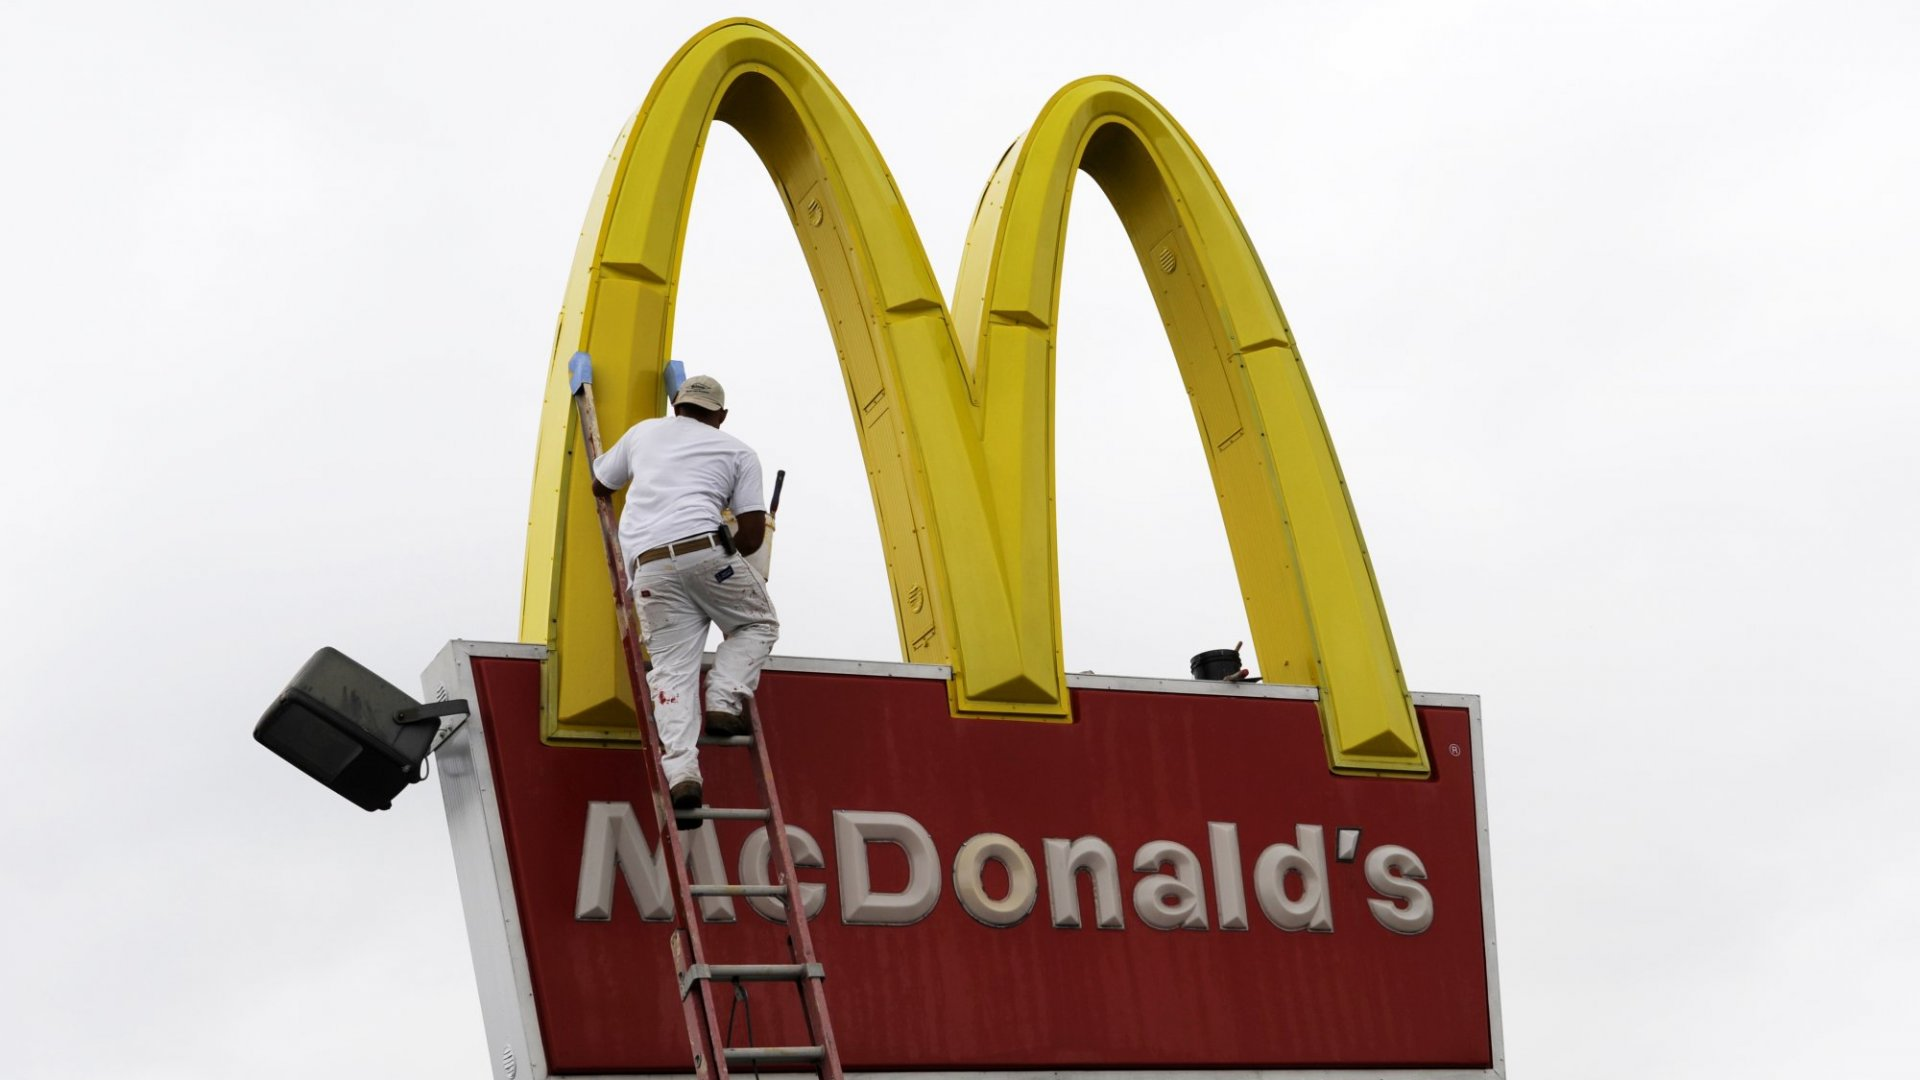 McDonald's Is Making a Fundamental Change to Its Burgers. Here's What's Going to Happen